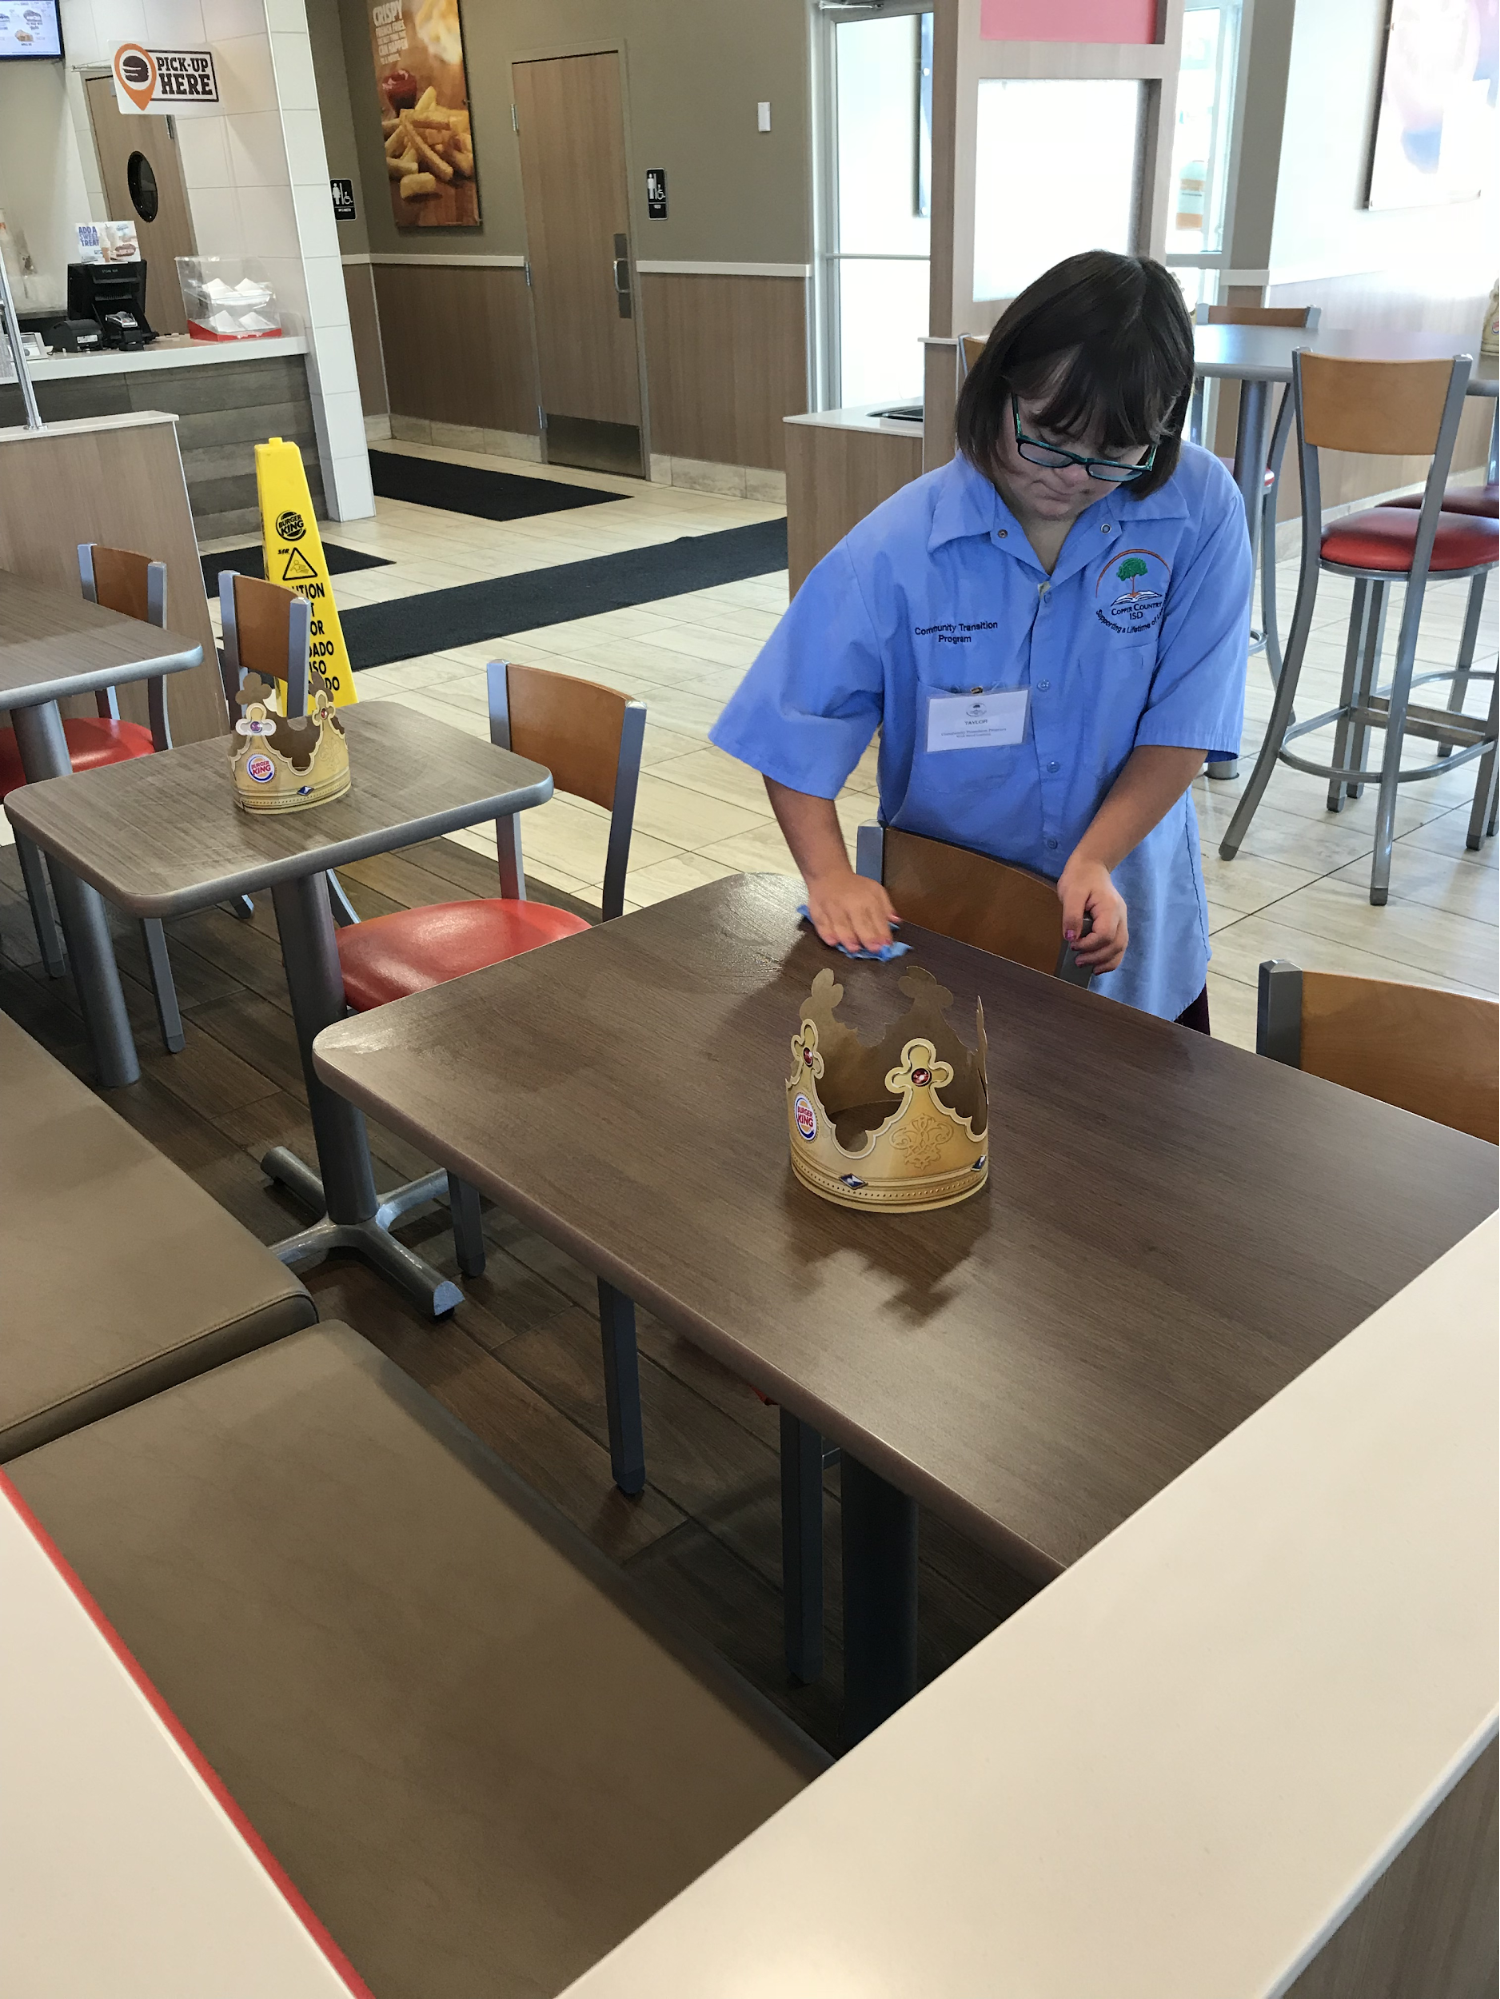 Student helping the local Burger King by cleaning tables